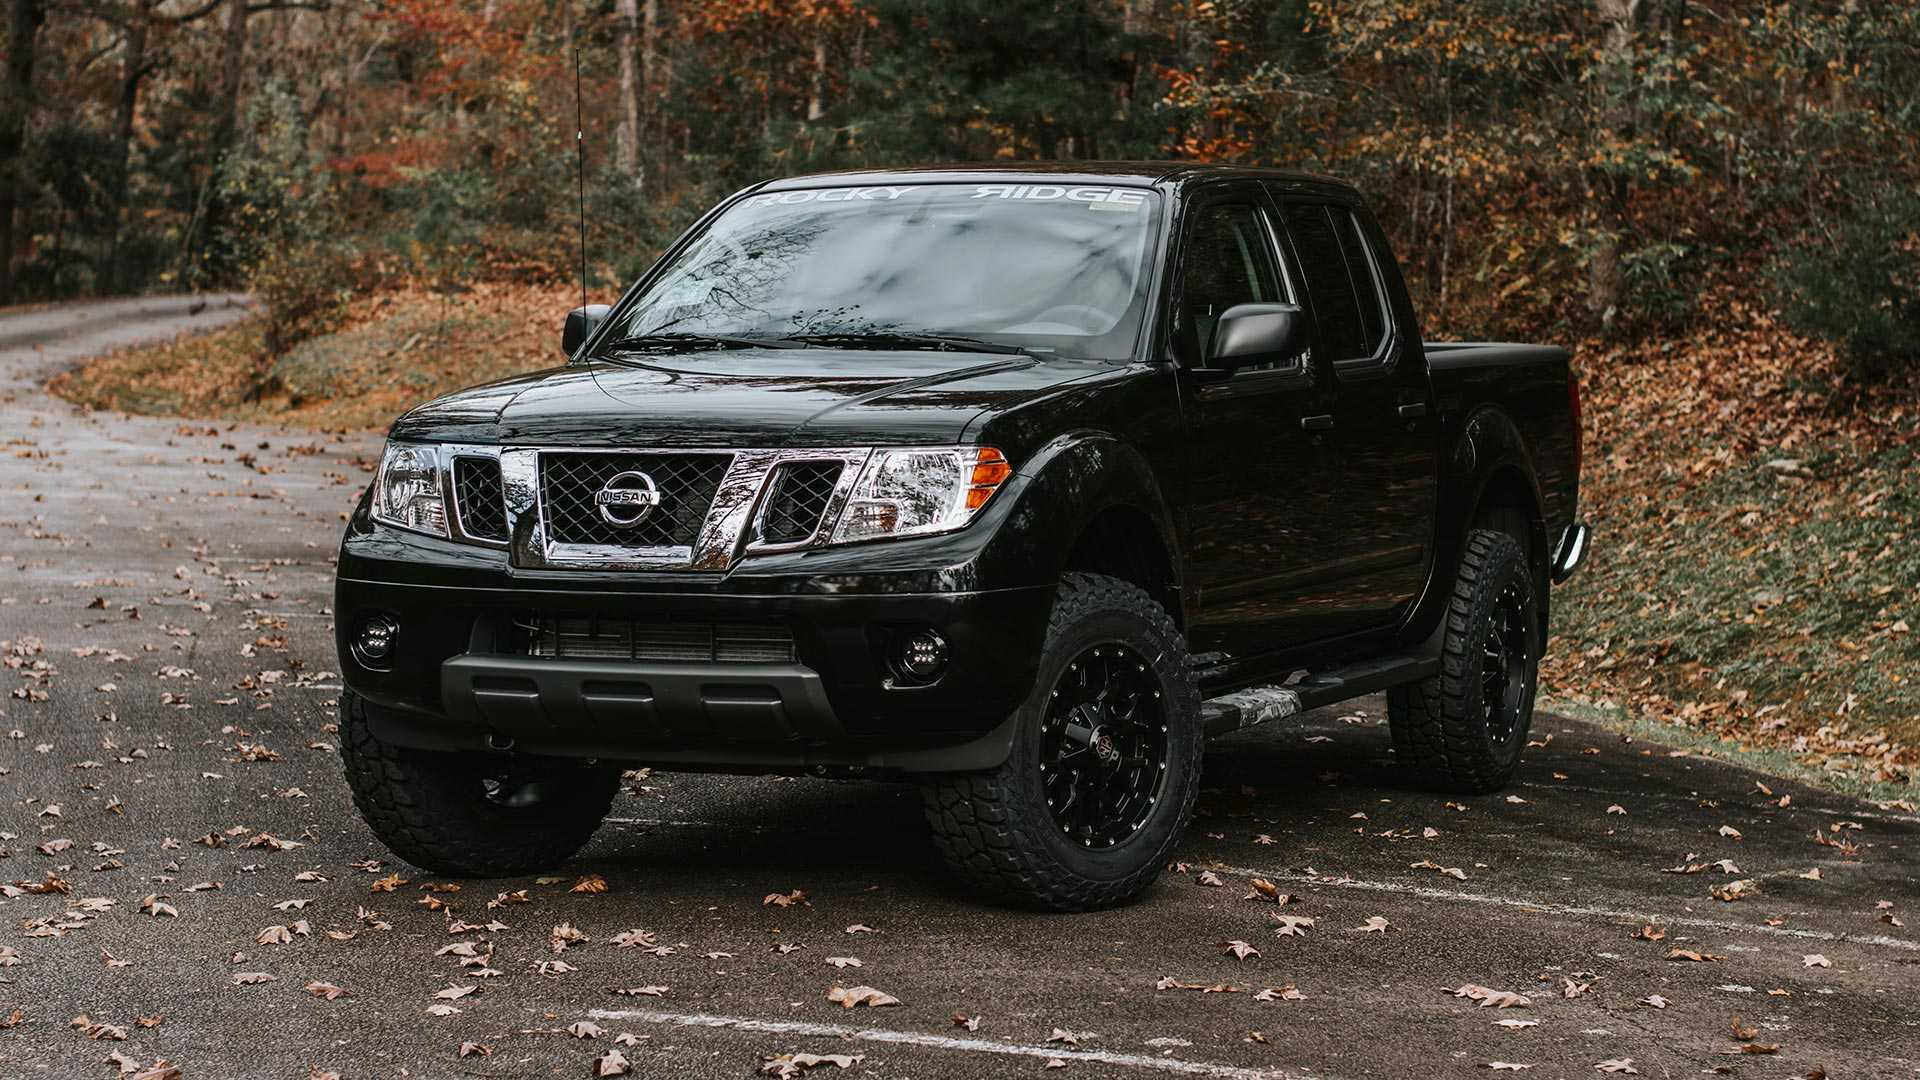 23 All New Nissan Frontier 2020 New Concept for Nissan Frontier 2020